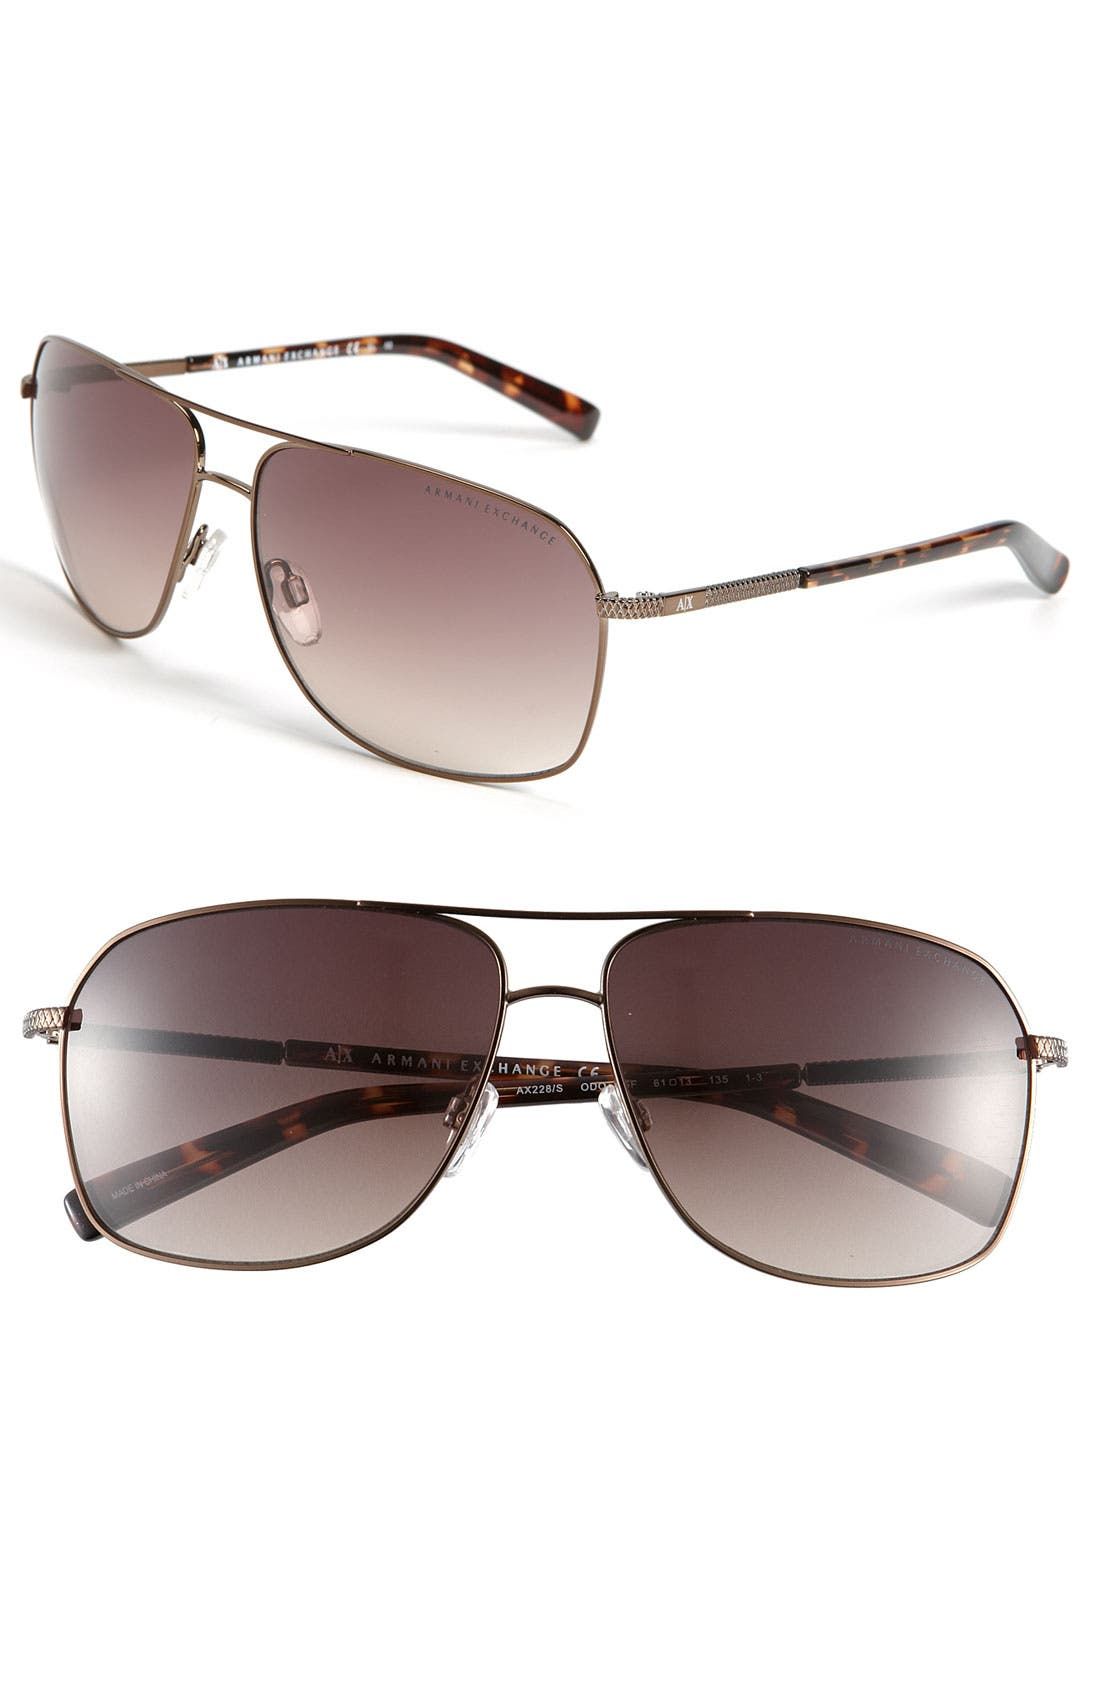 Alternate Image 1 Selected - AX Armani Exchange Metal Aviator Sunglasses